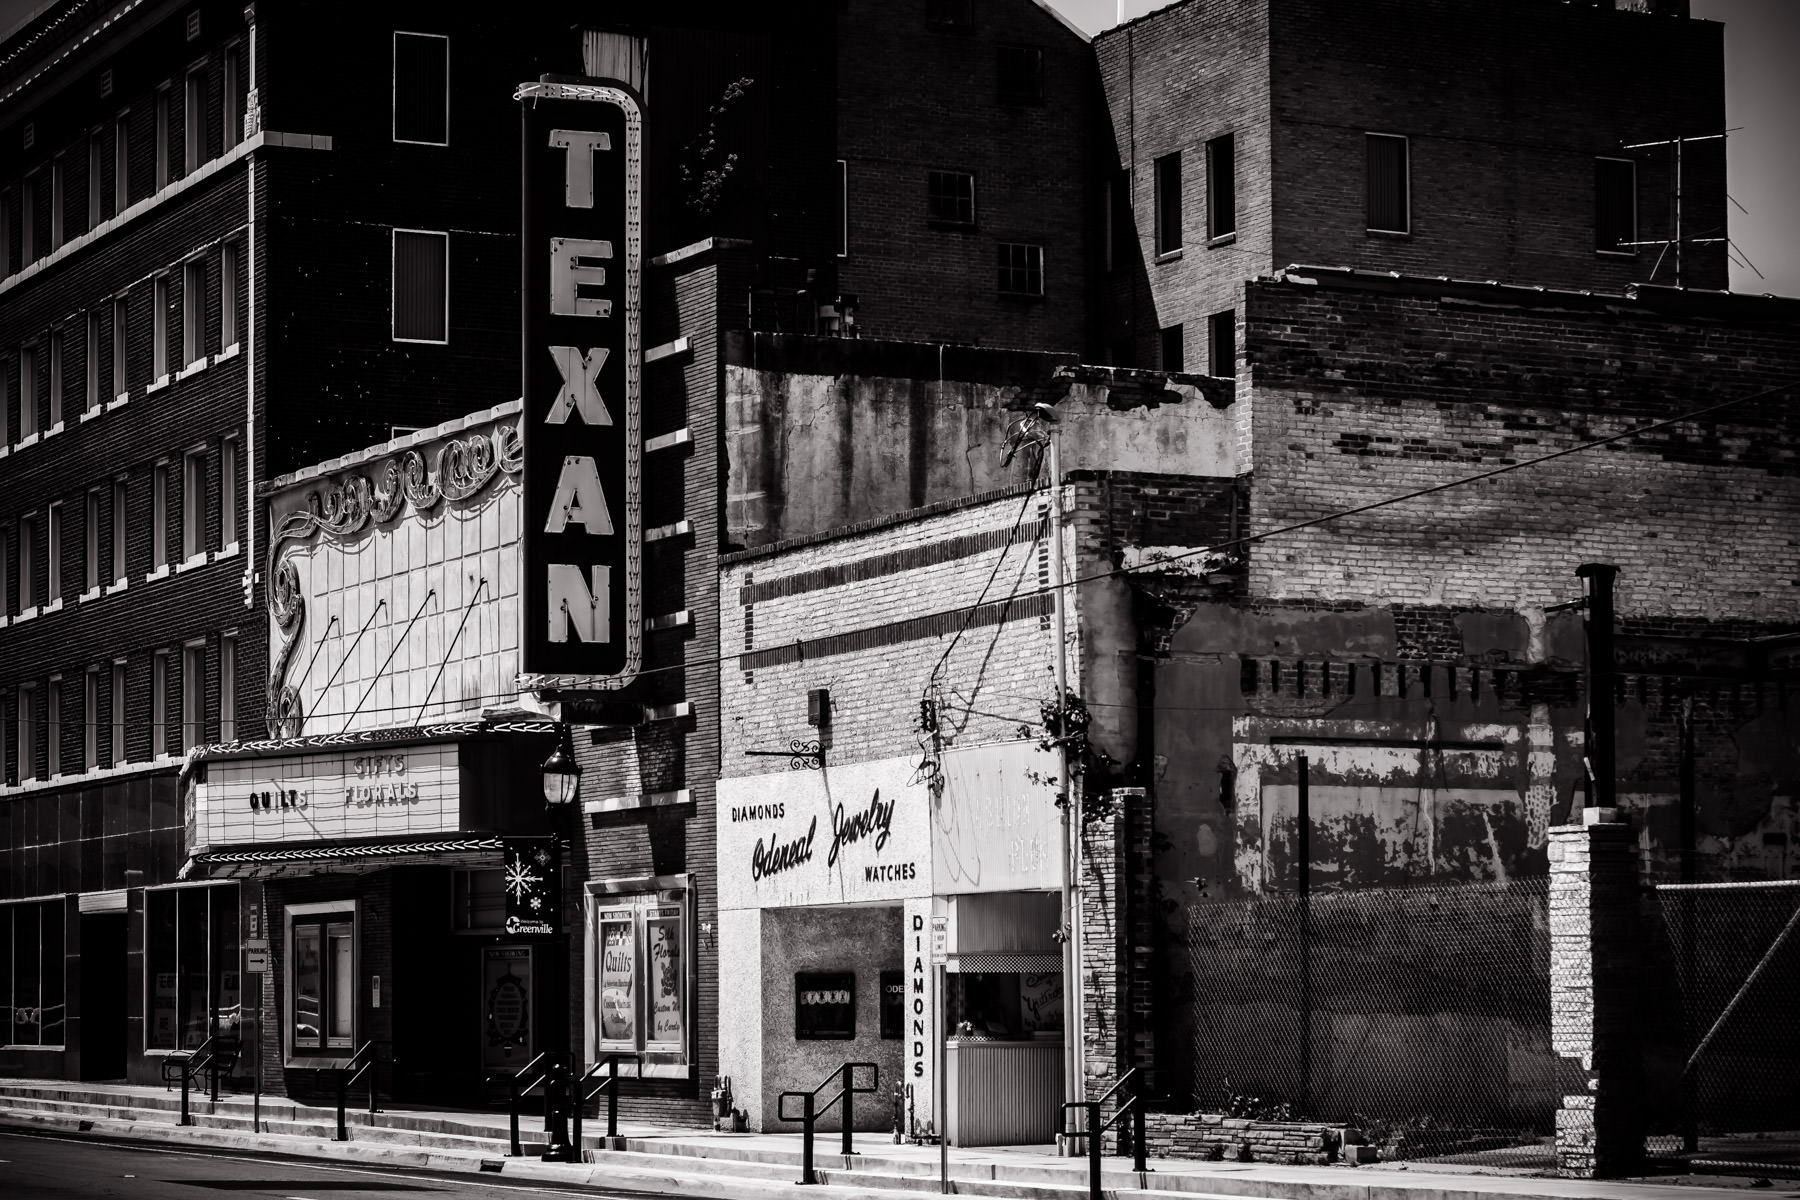 An old theatre in Downtown Greenville, Texas.